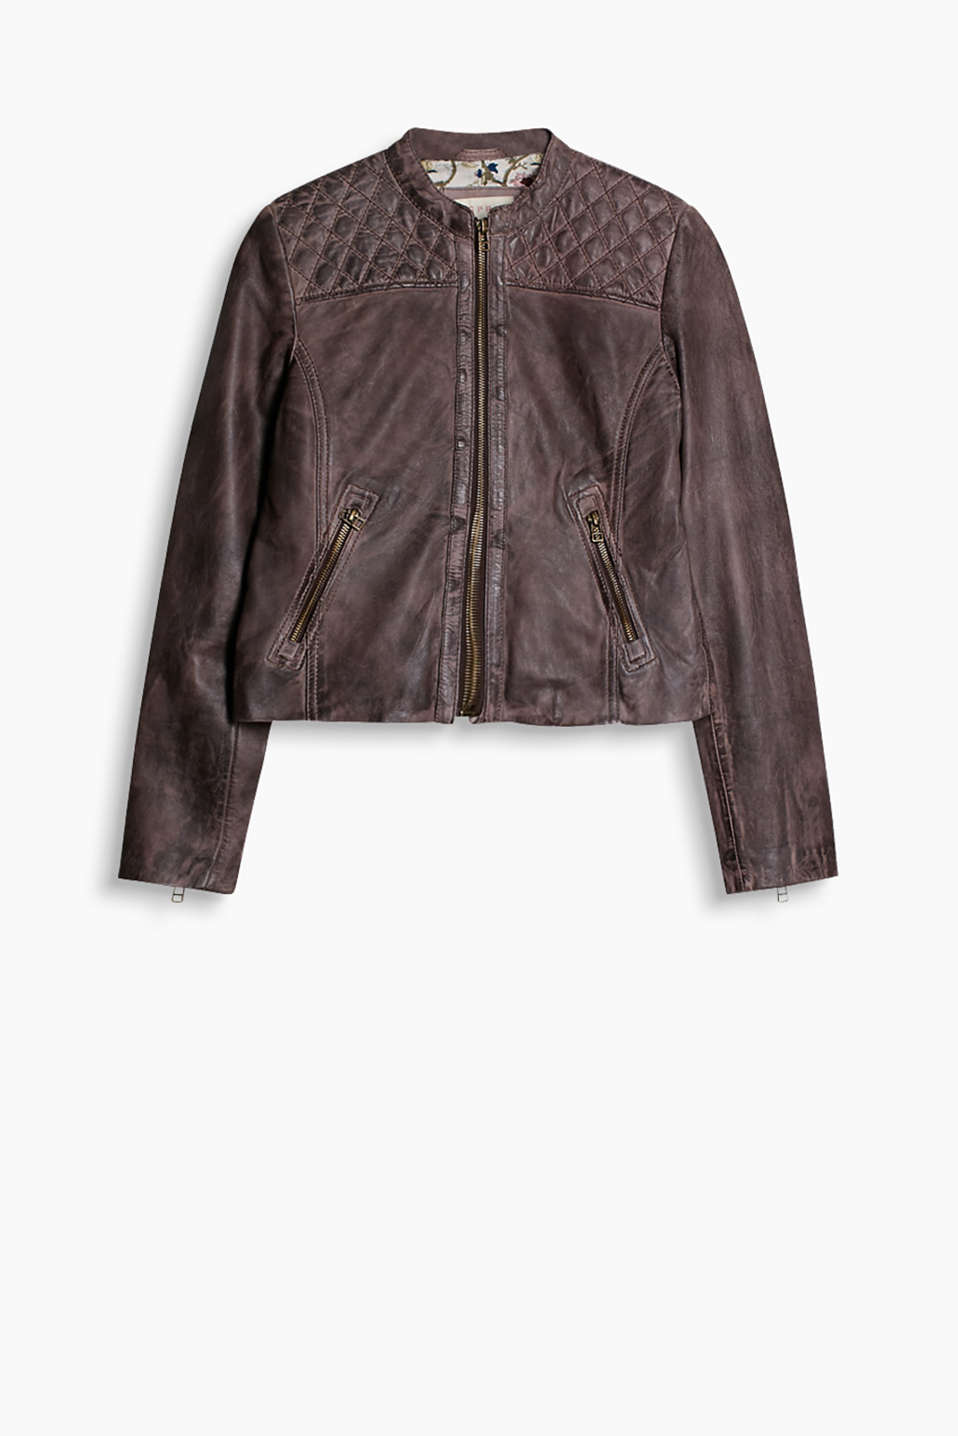 Butter soft leather jacket with a vintage finish and a quilted diamond pattern